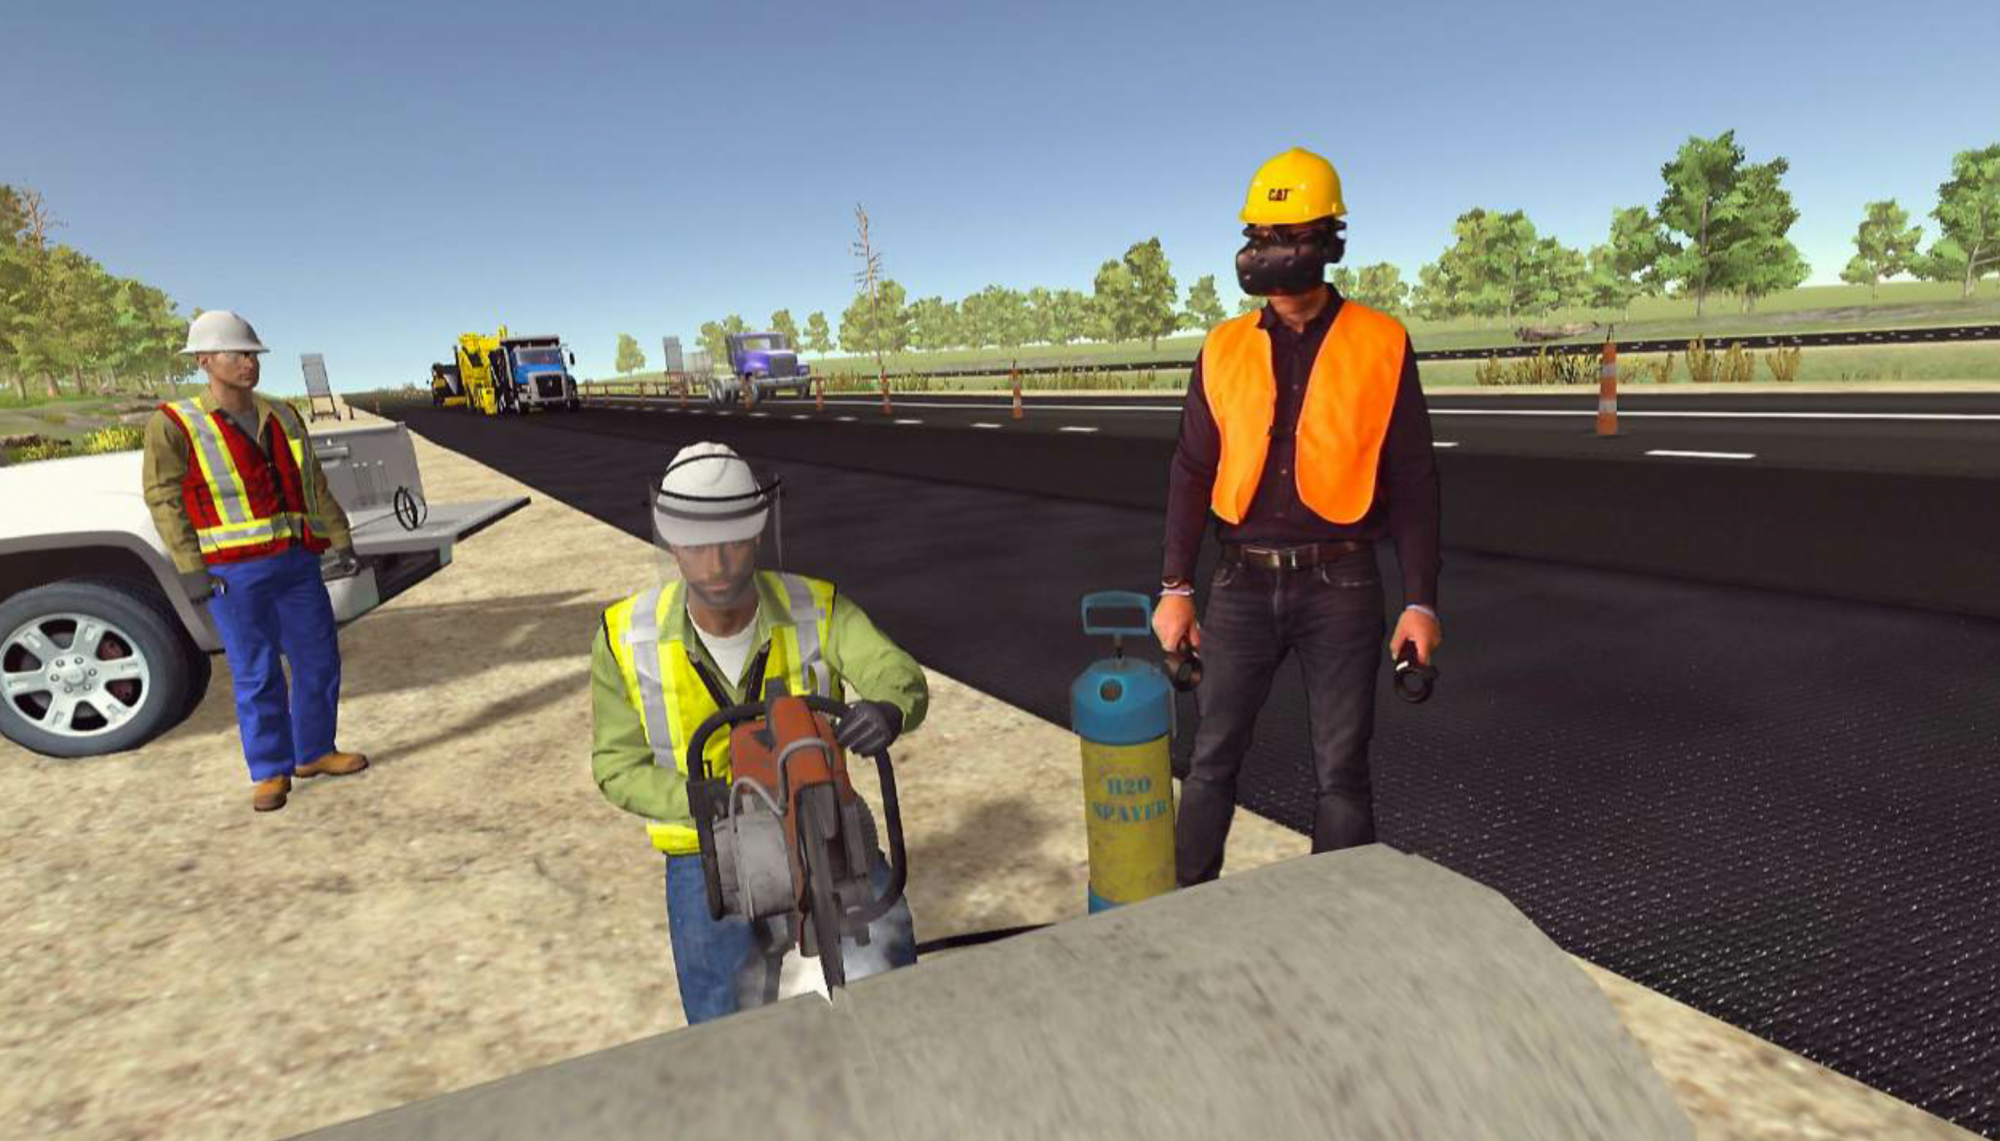 The paving module immerses the viewer in a virtual environment alongside the paving train.